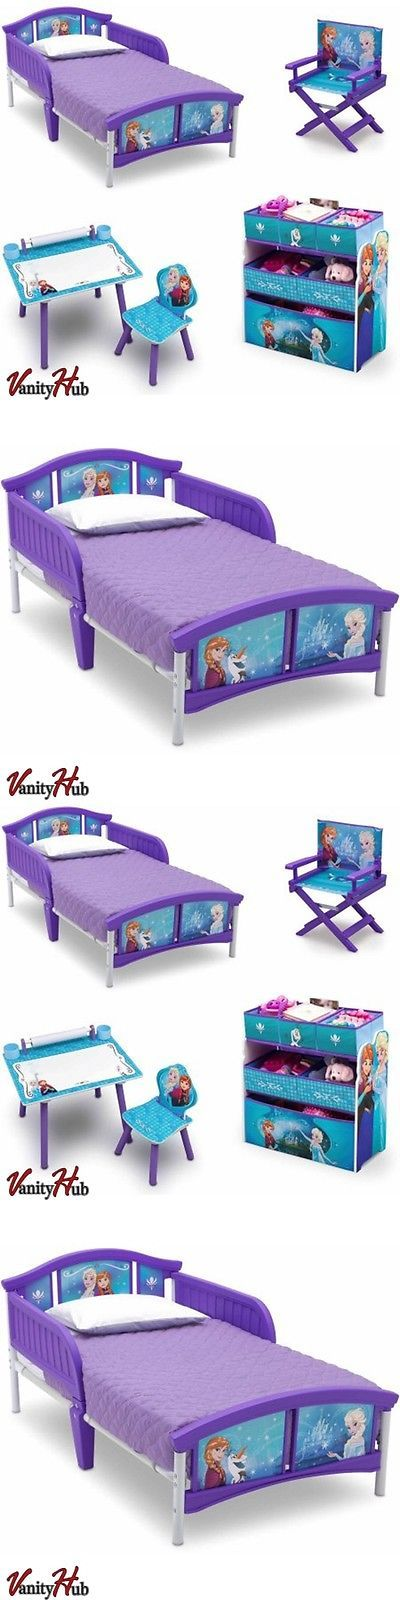 Kids at Home: Disney Frozen Toddler Bed Bedroom Set Toy Box Kids Furniture Desk Chair Bins -> BUY IT NOW ONLY: $160.49 on eBay!